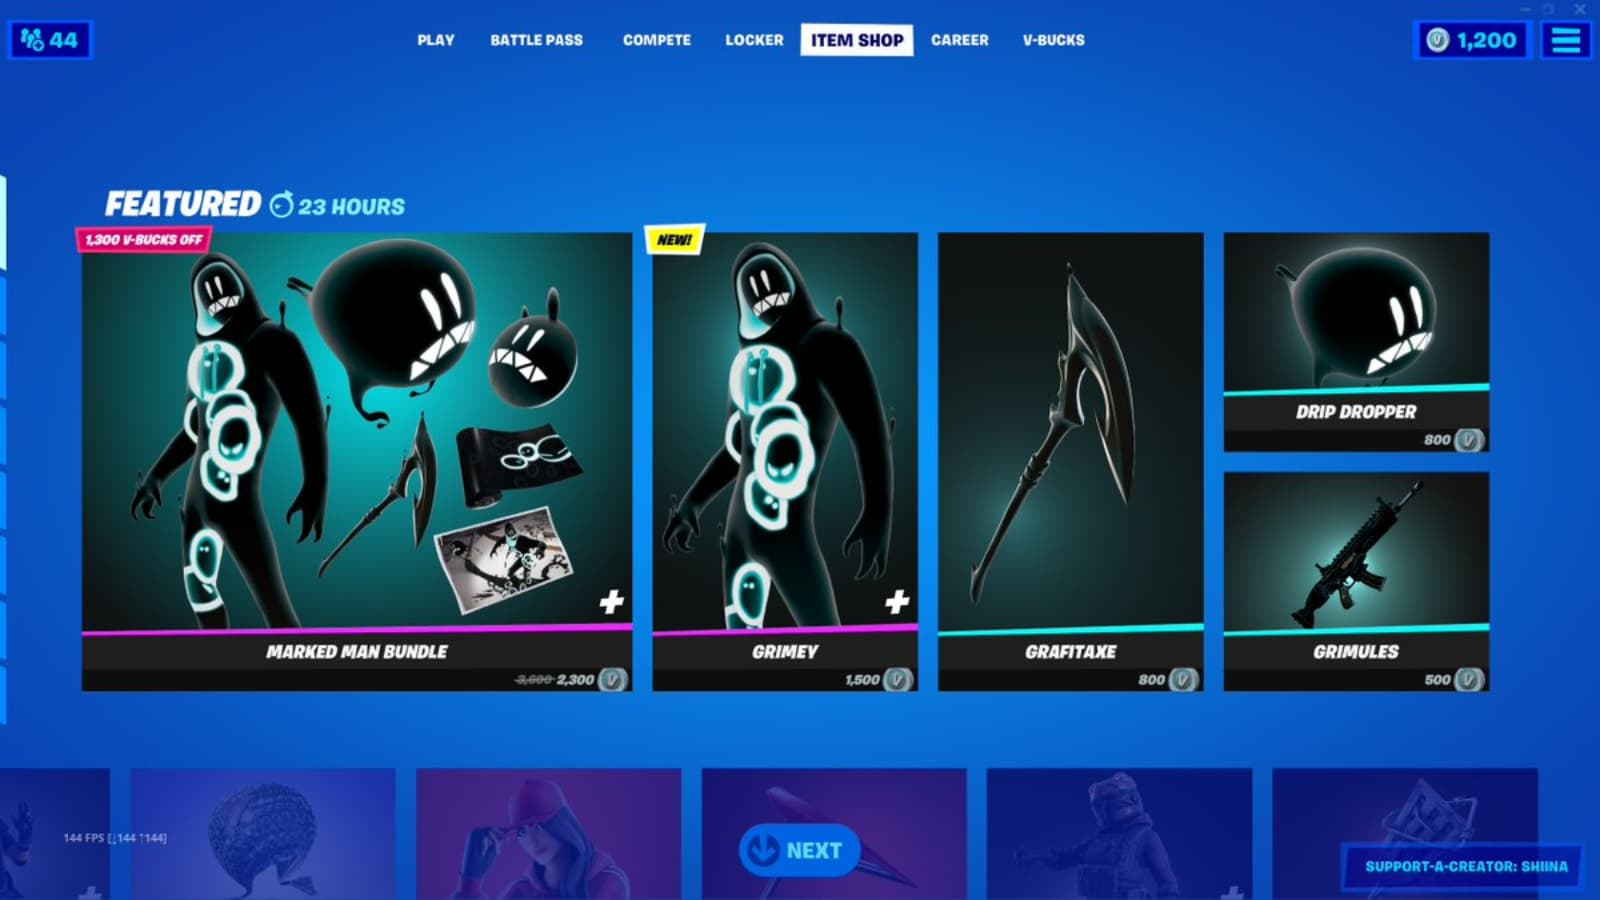 How to Get New Fortnite Grimey Skin from Marked Man Bundle